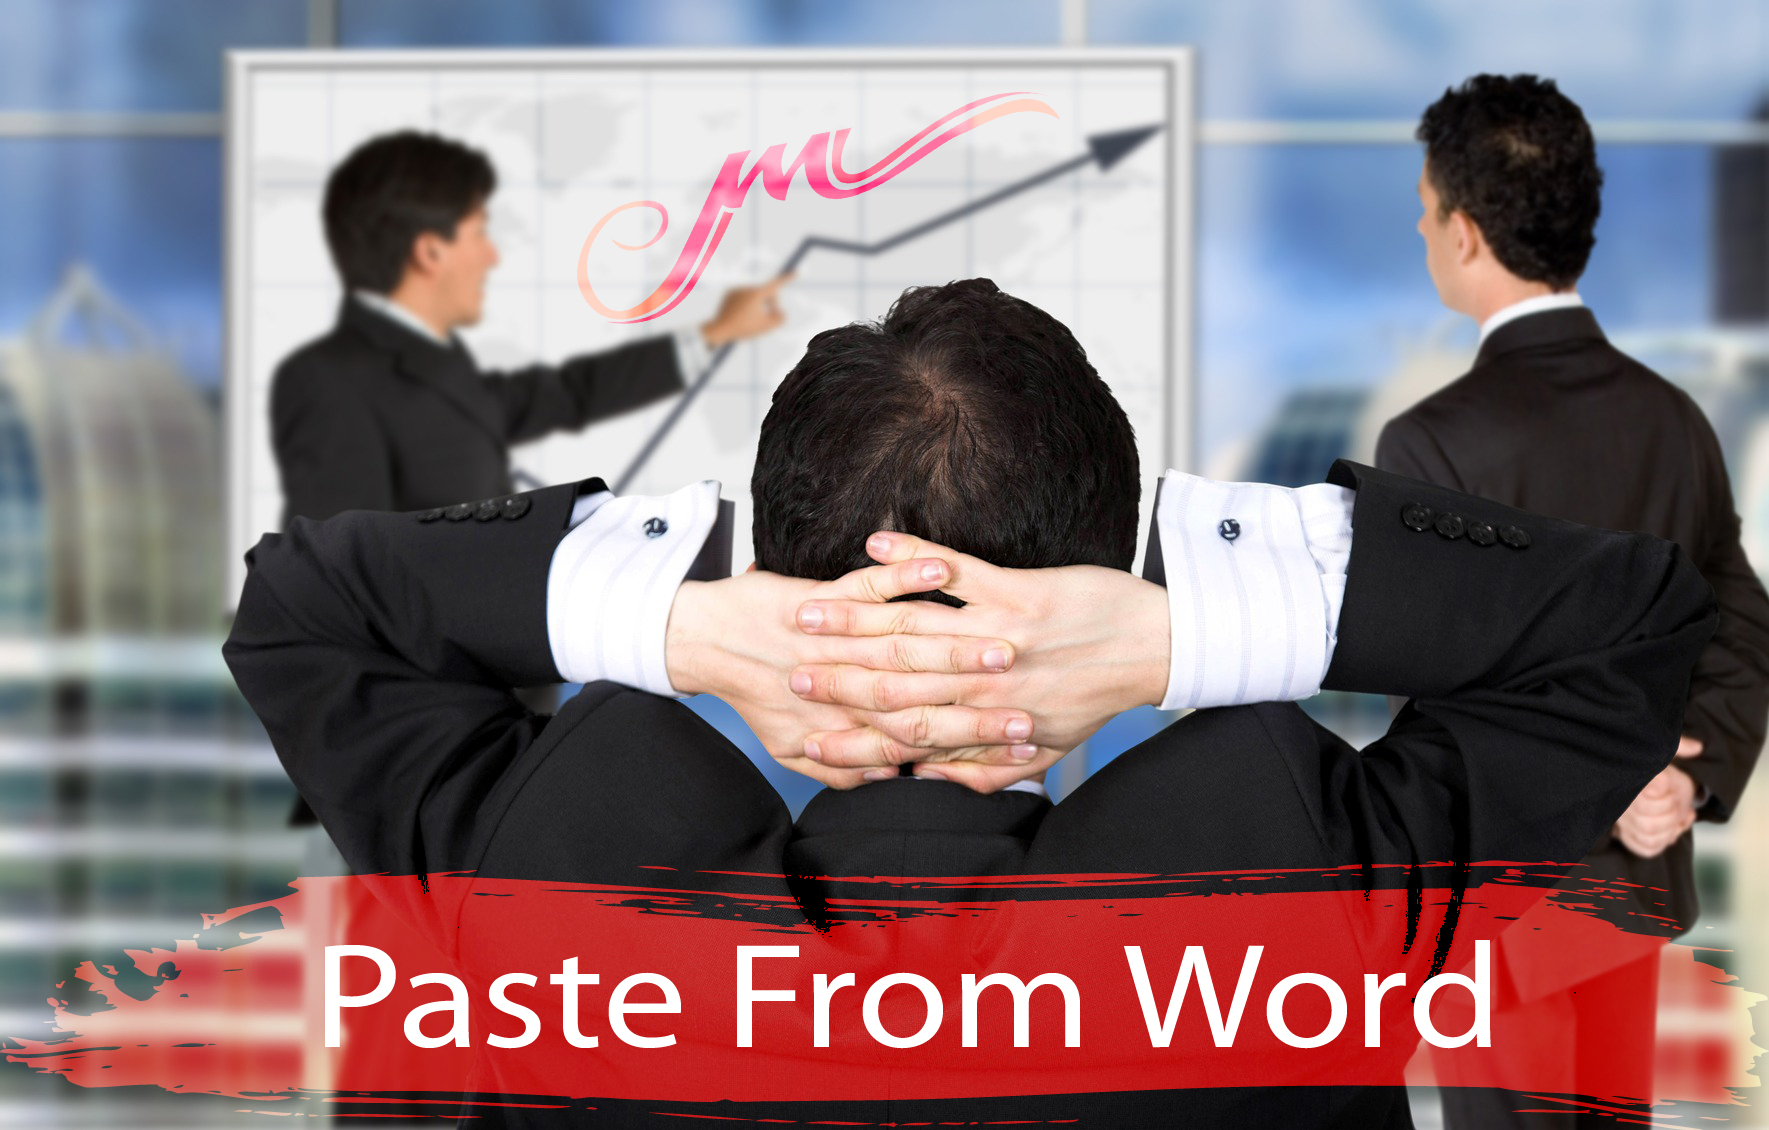 Paste from Word